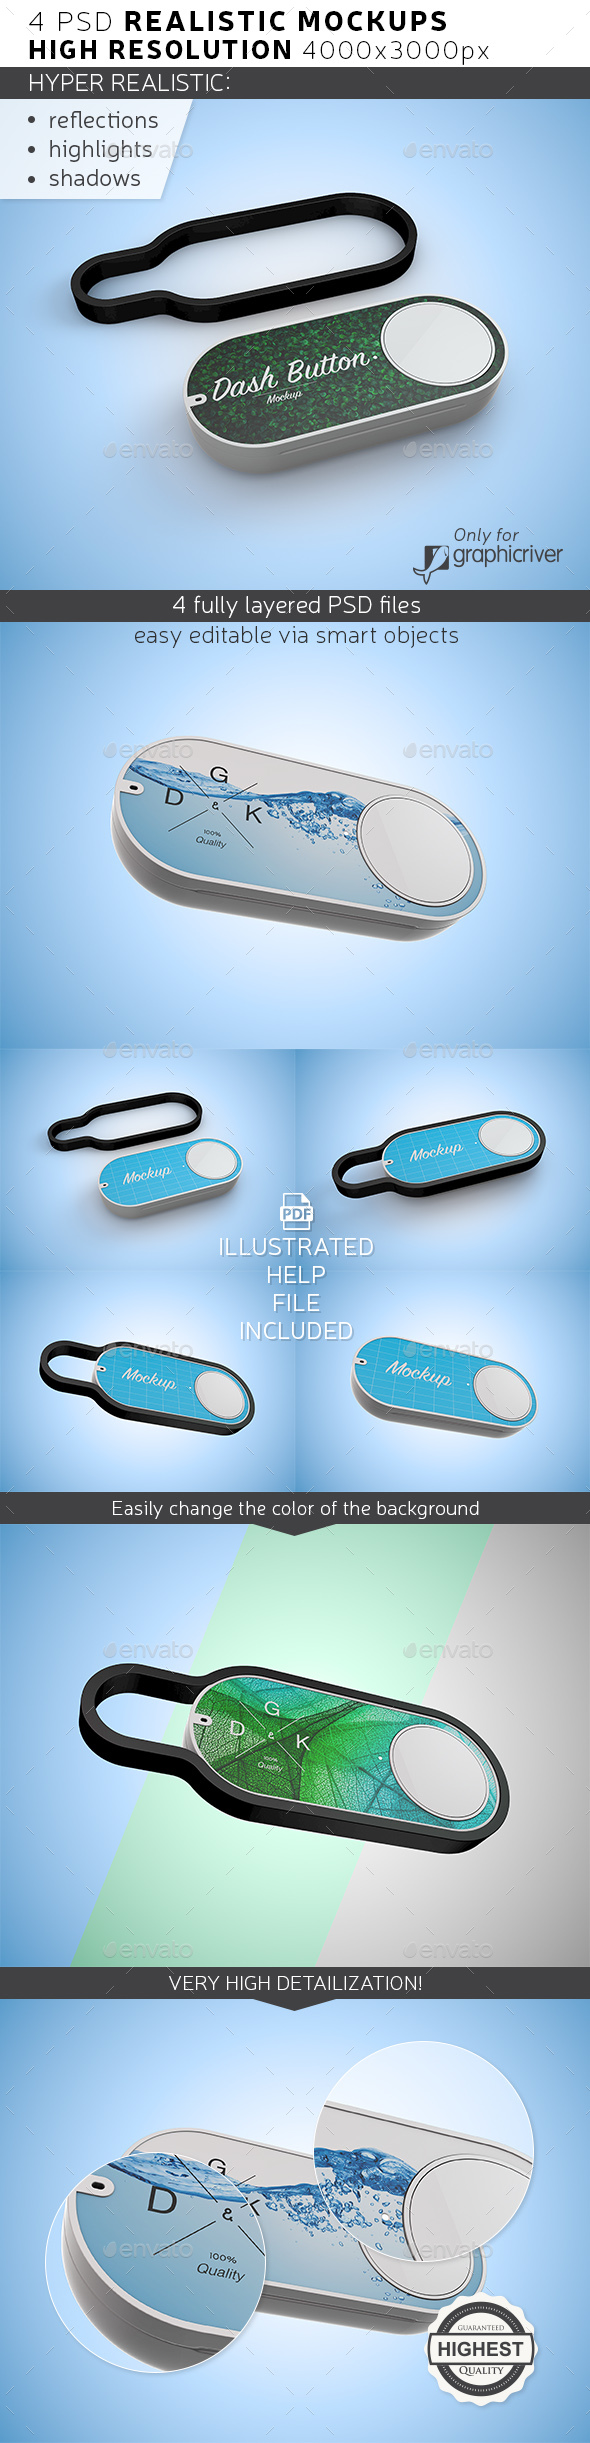 Dash Button Mockup - Product Mock-Ups Graphics